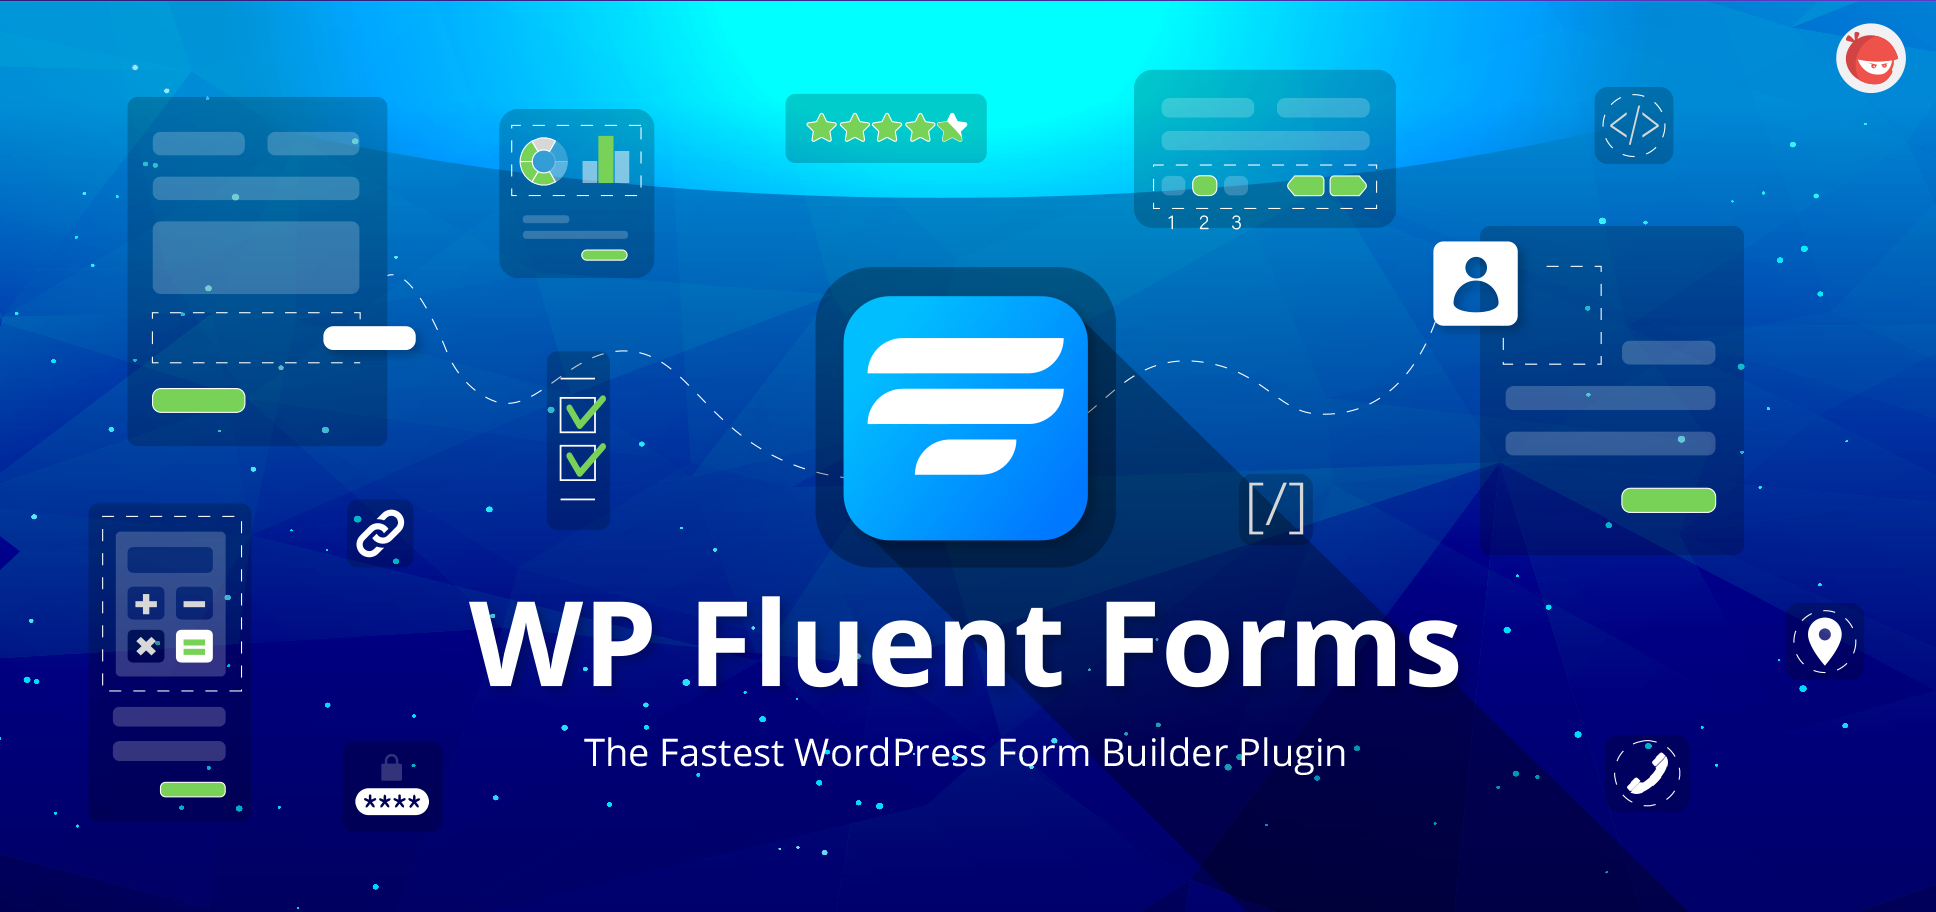 WP Fluent Forms Pro Add-On: The Fastest & Most Powerful WordPress Form Plugin